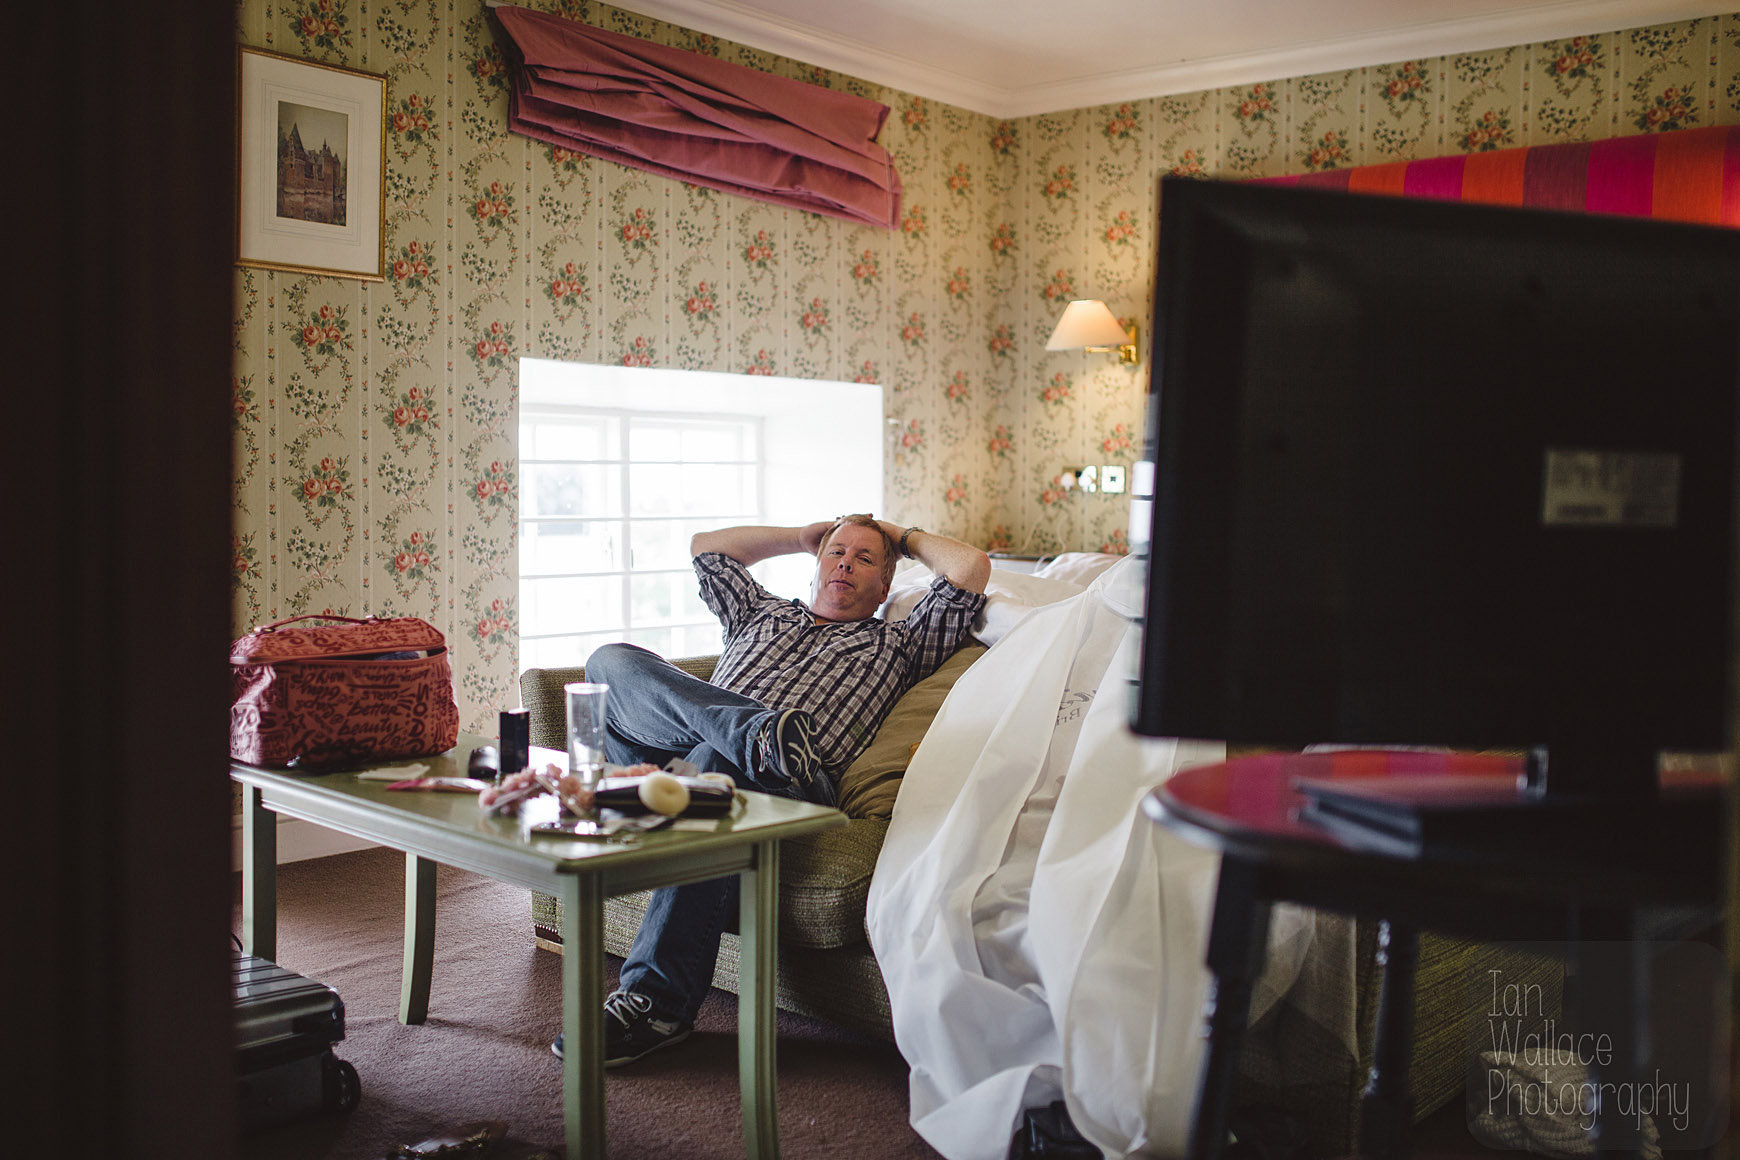 Father of the bride relaxing, watching TV during bridal preparation